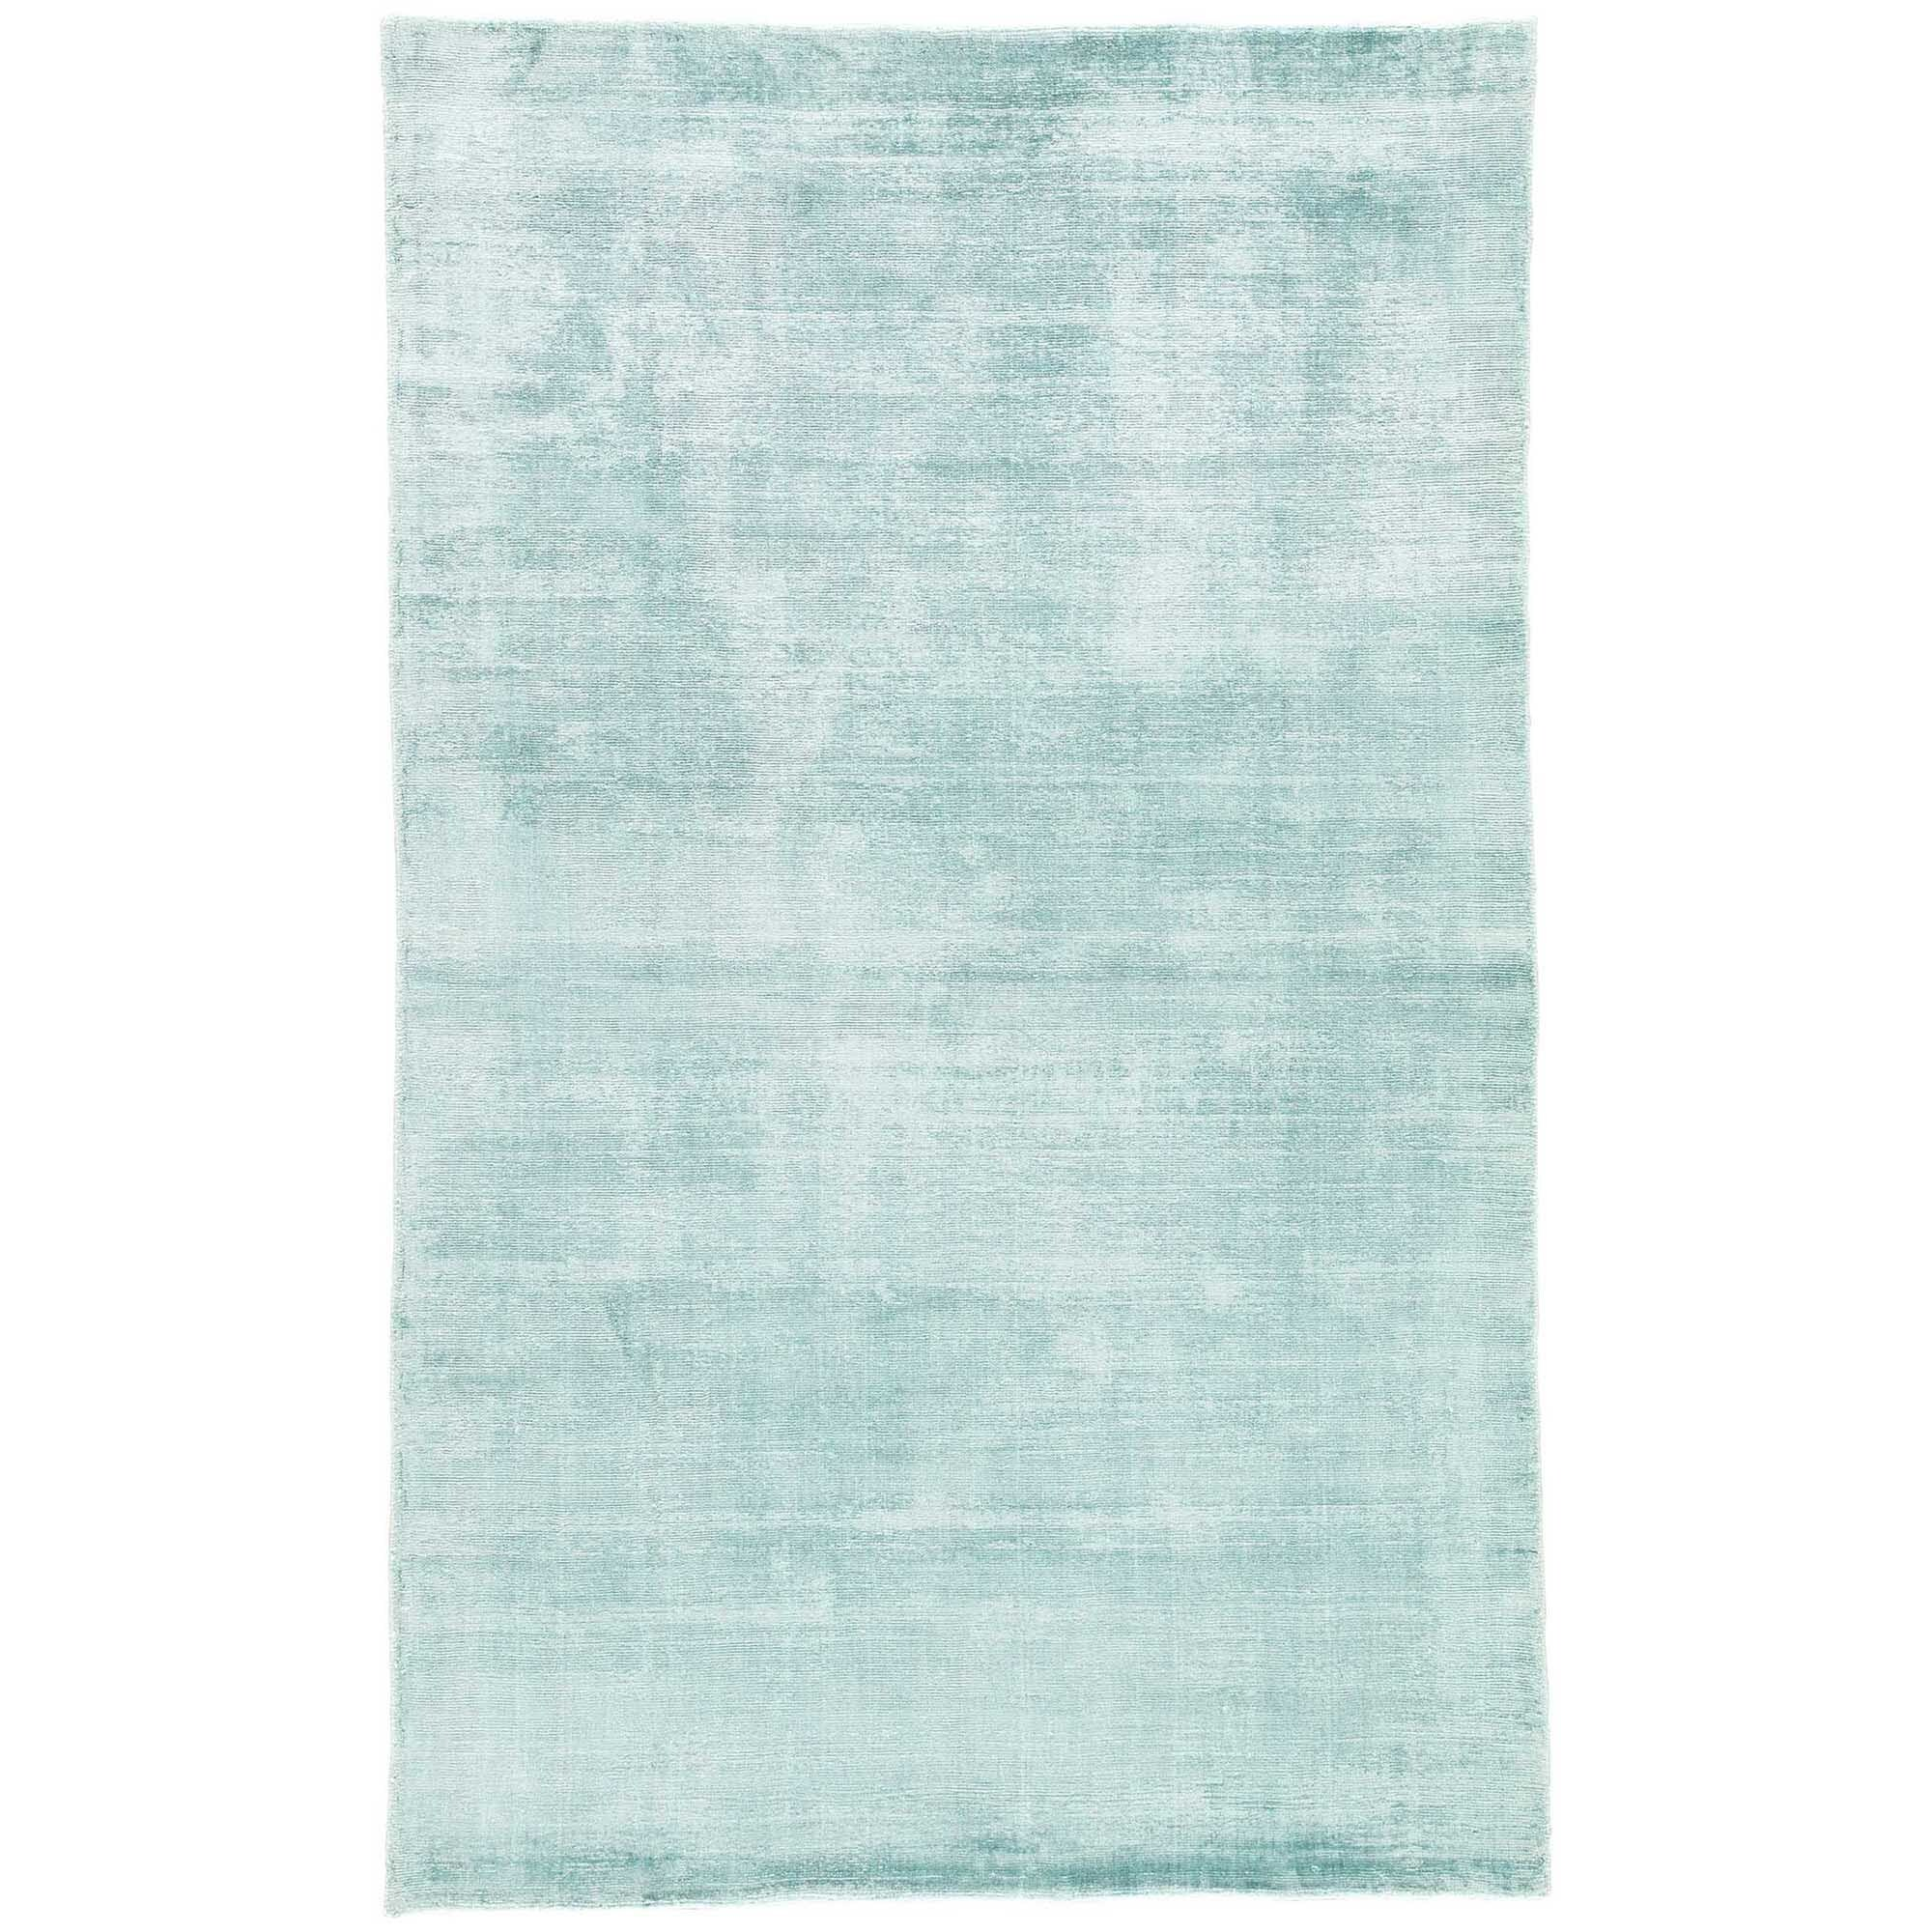 home aqua affinity white size luxurious x rug silken area pin shag